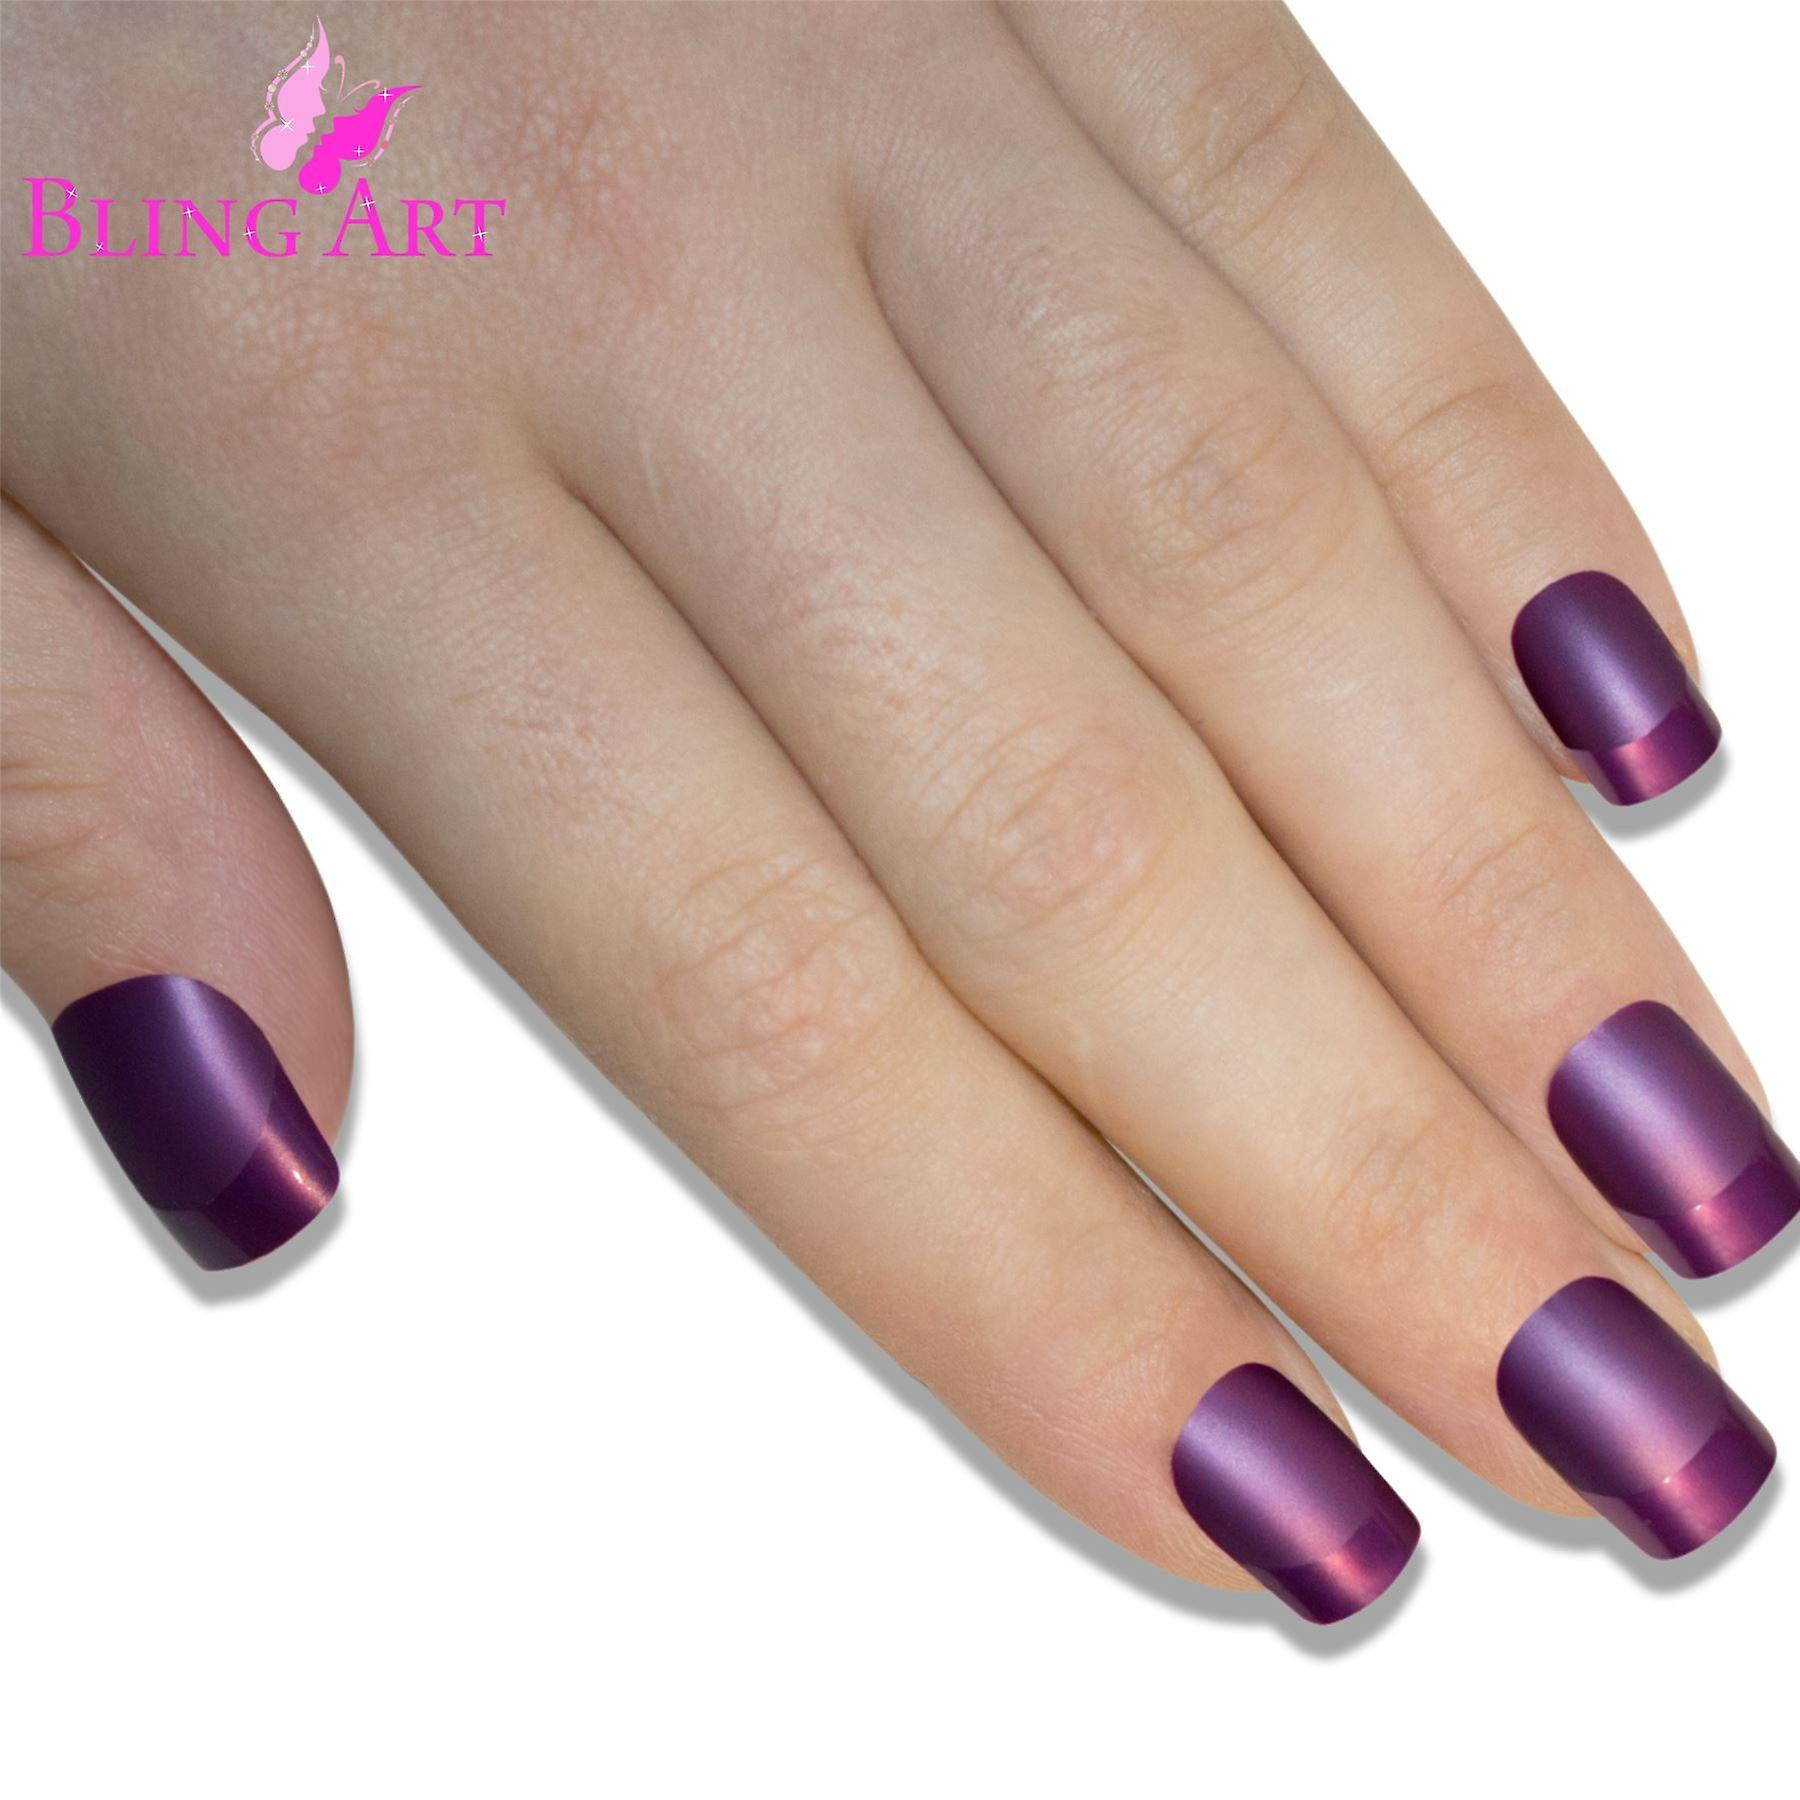 False nails by bling art purple matte french manicure fake medium tips with glue